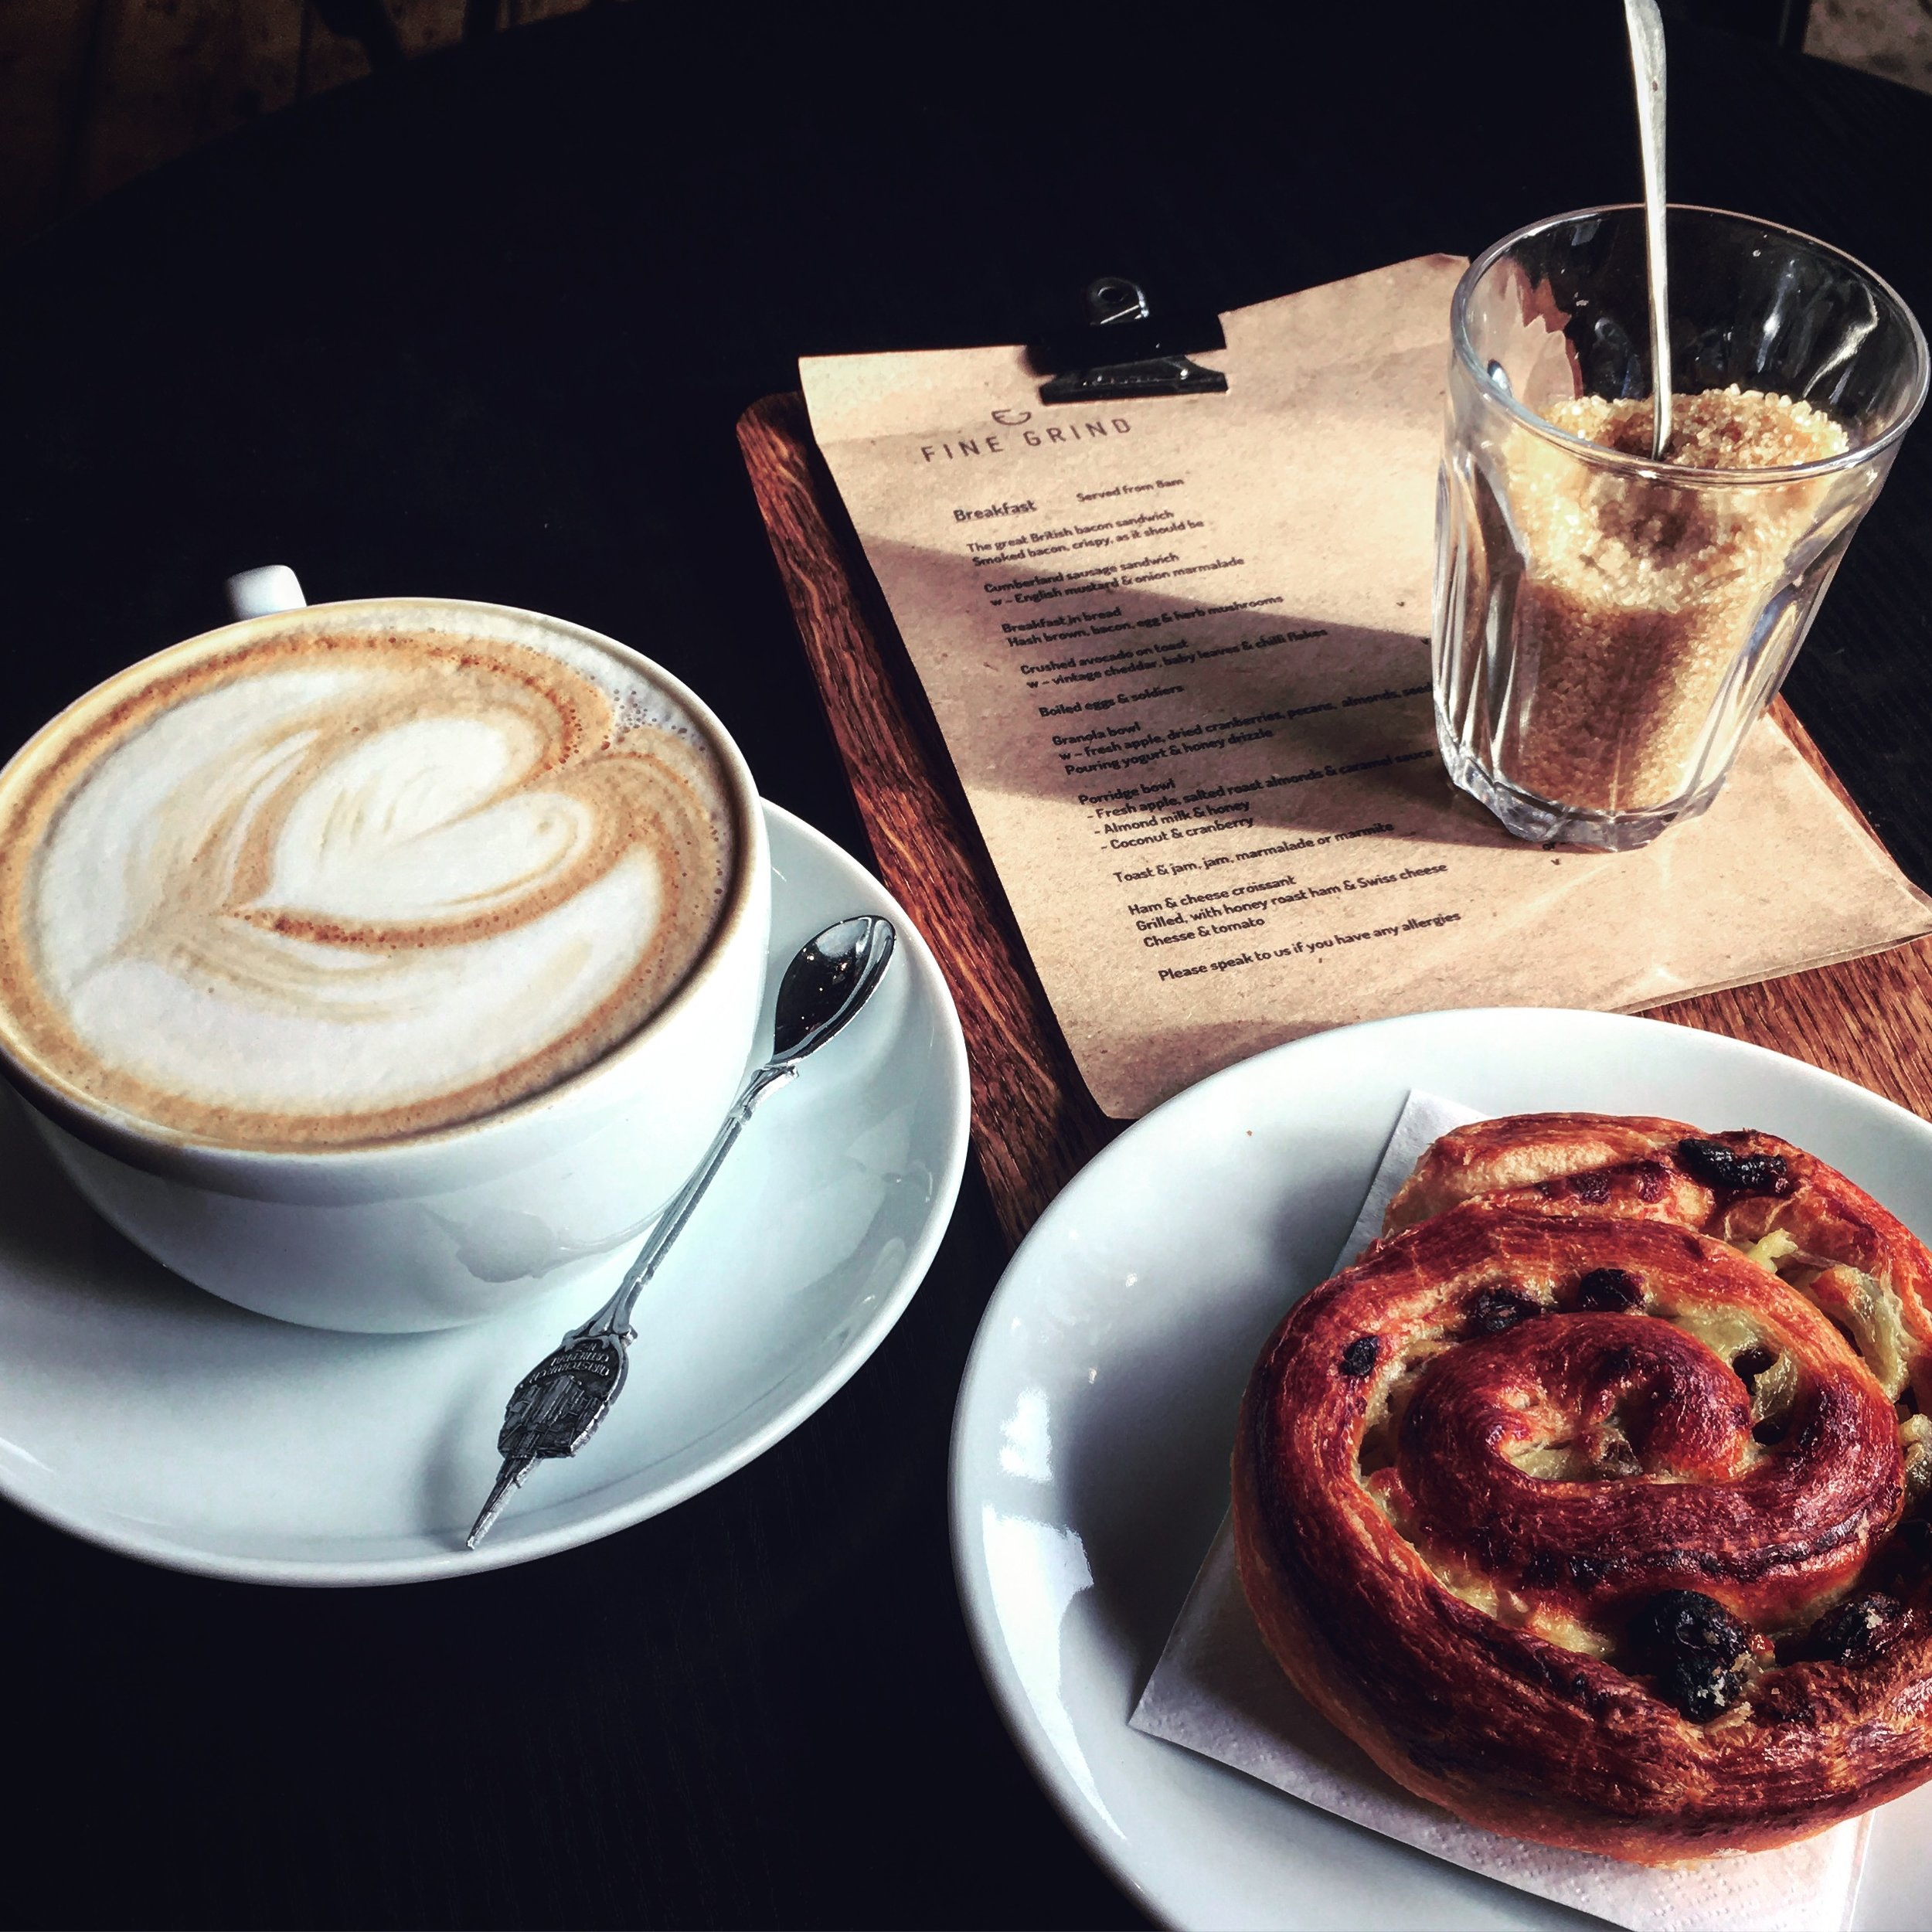 COFFEE & CAKE - Basil • Bean Smitten • Black Dog • Daily Bread • Find Grind • Juliets • The Bicycle Bakery • The Cake Shed • The Earl Grey Tearoom • The Pantiles Cafe